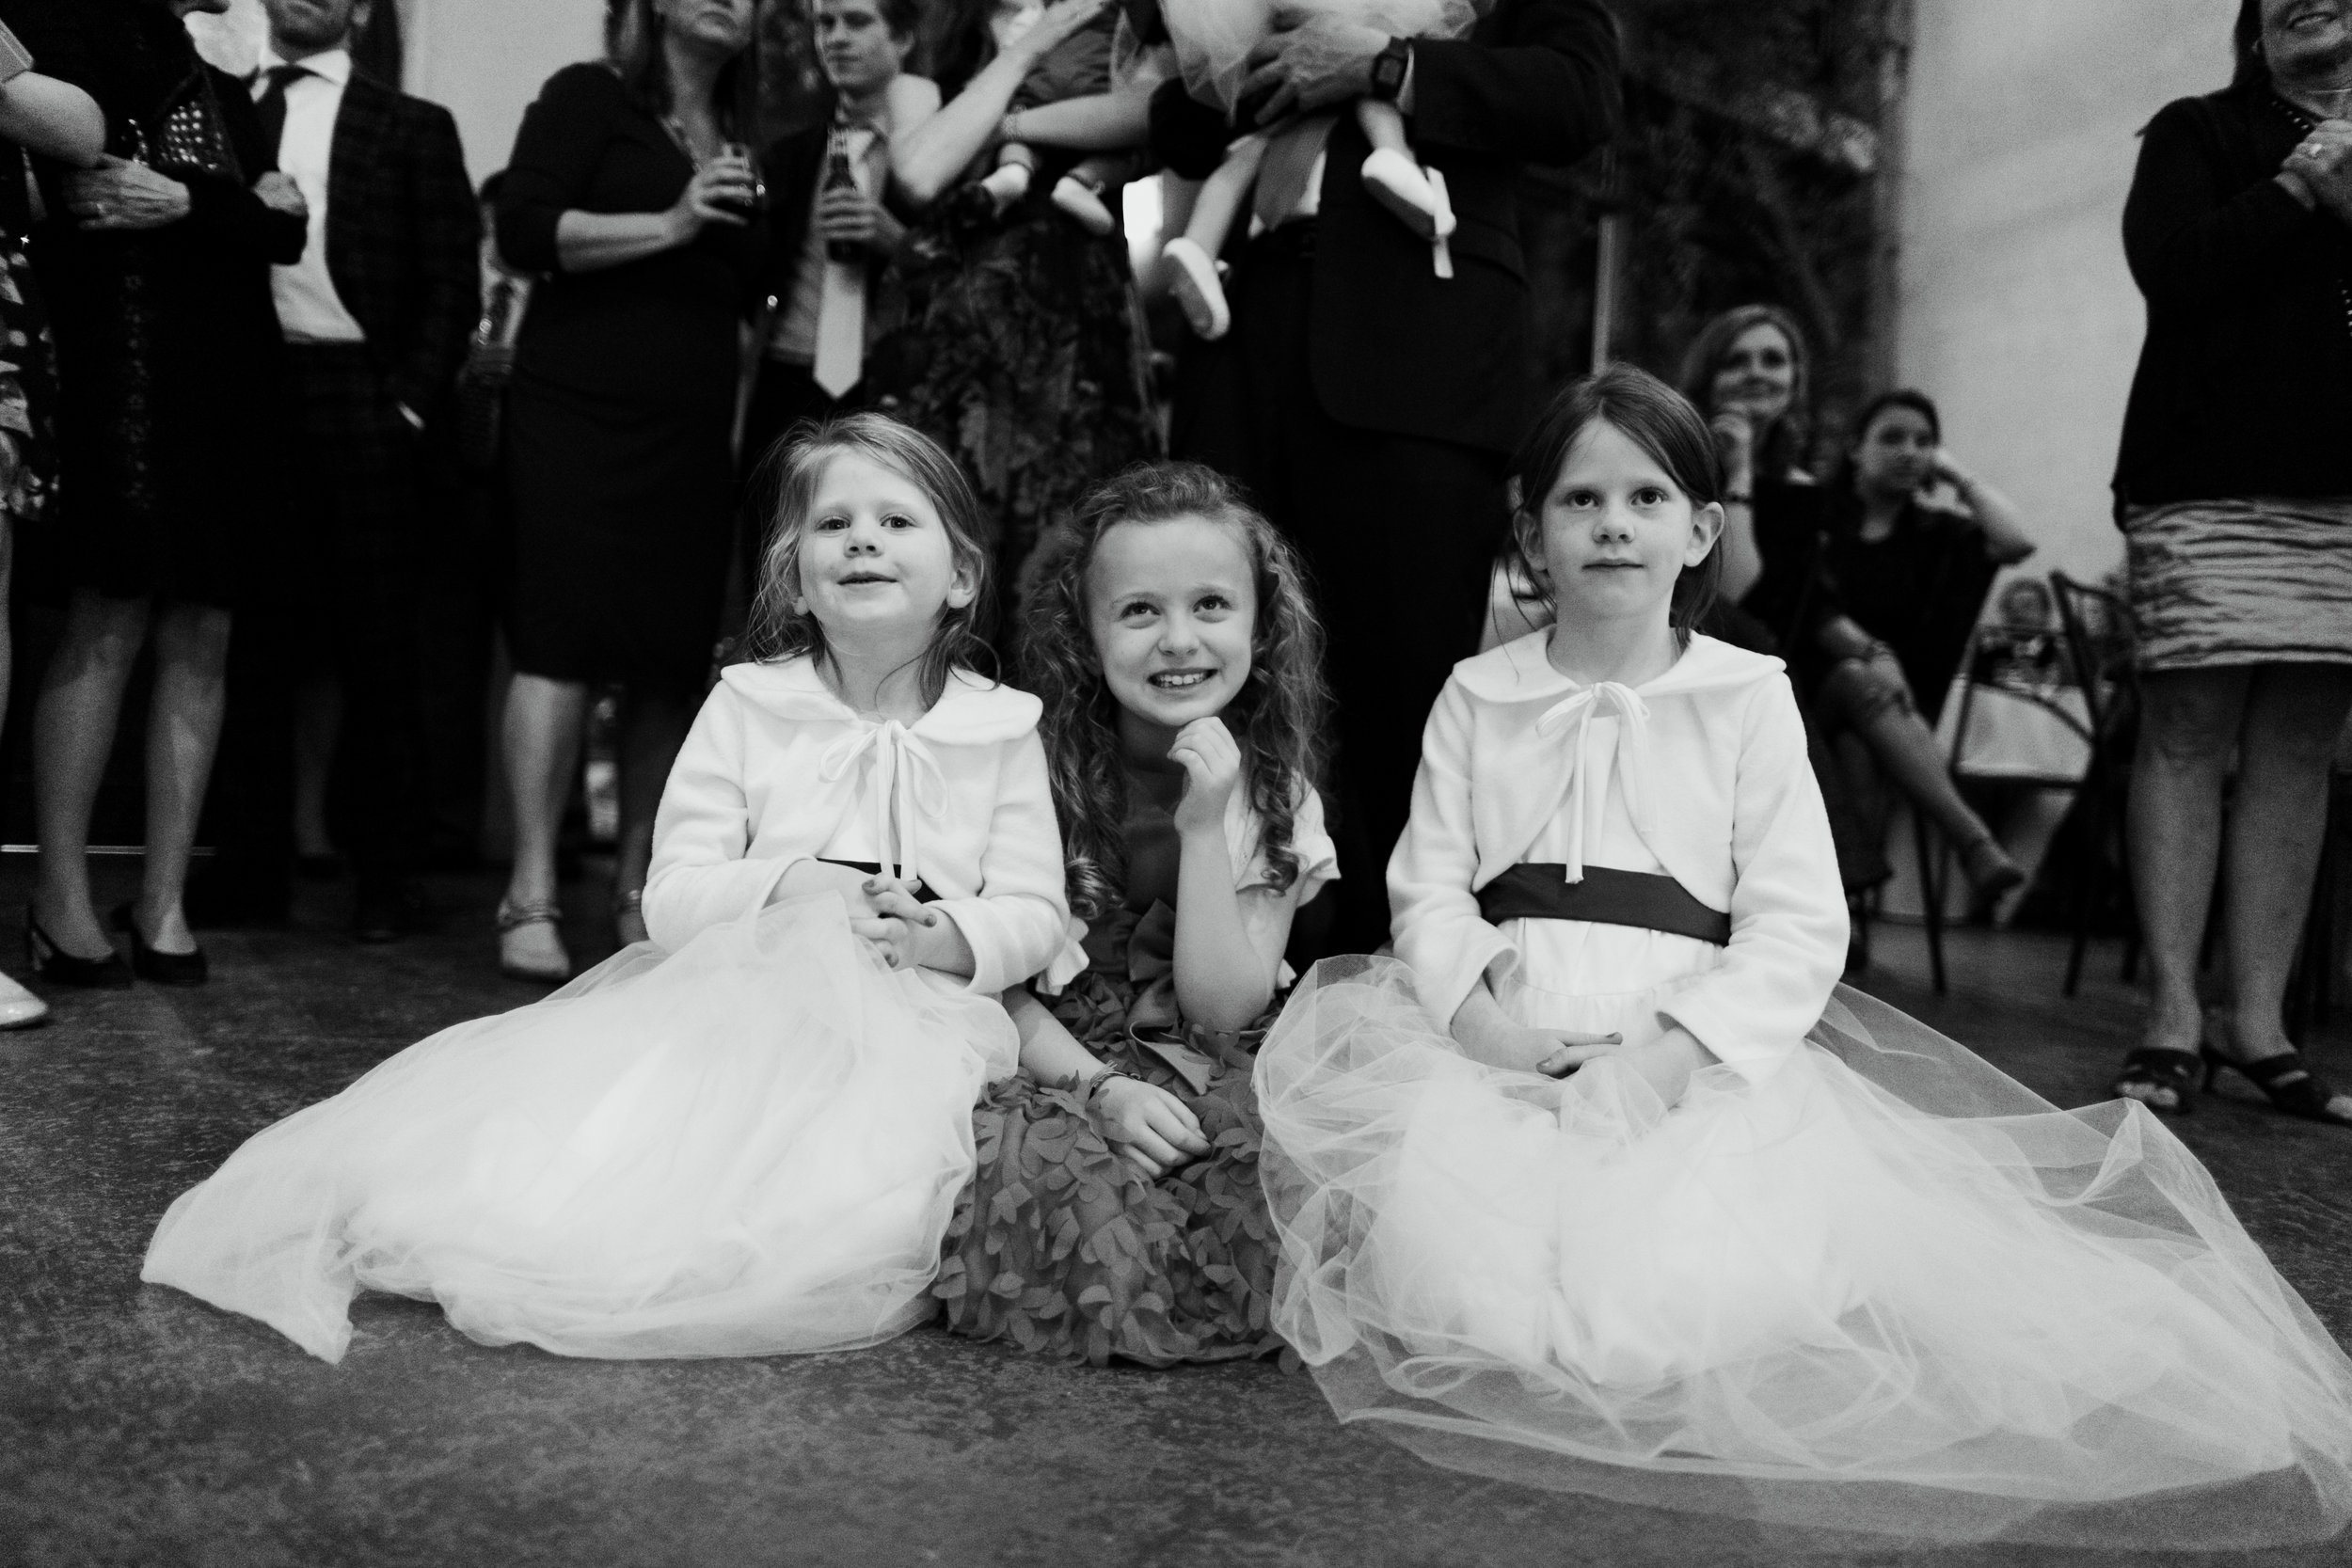 My nieces and my cousin being cute.